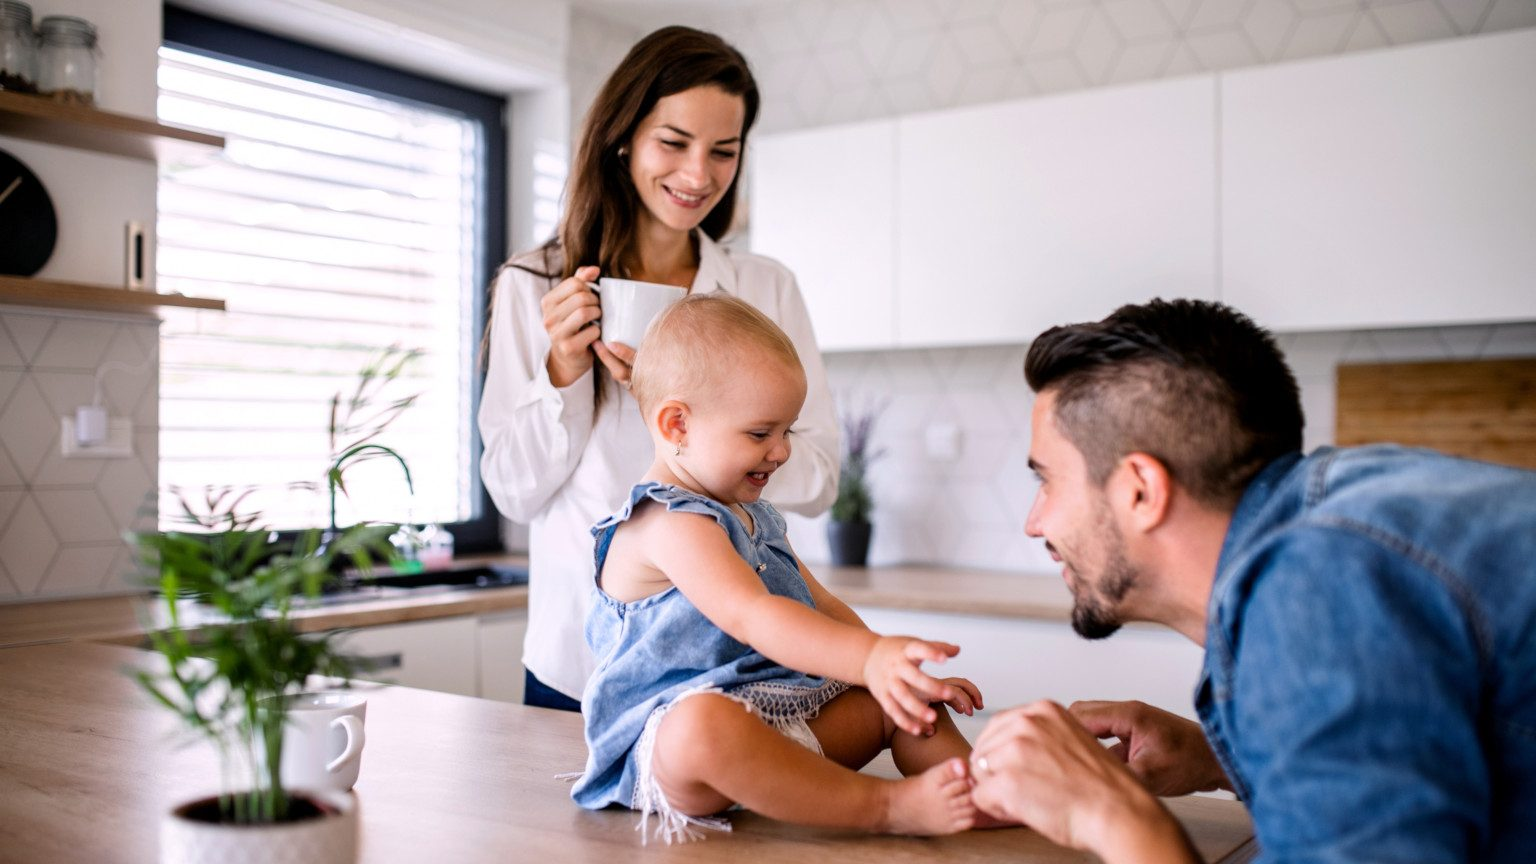 Young parents with smiling baby in kitchen